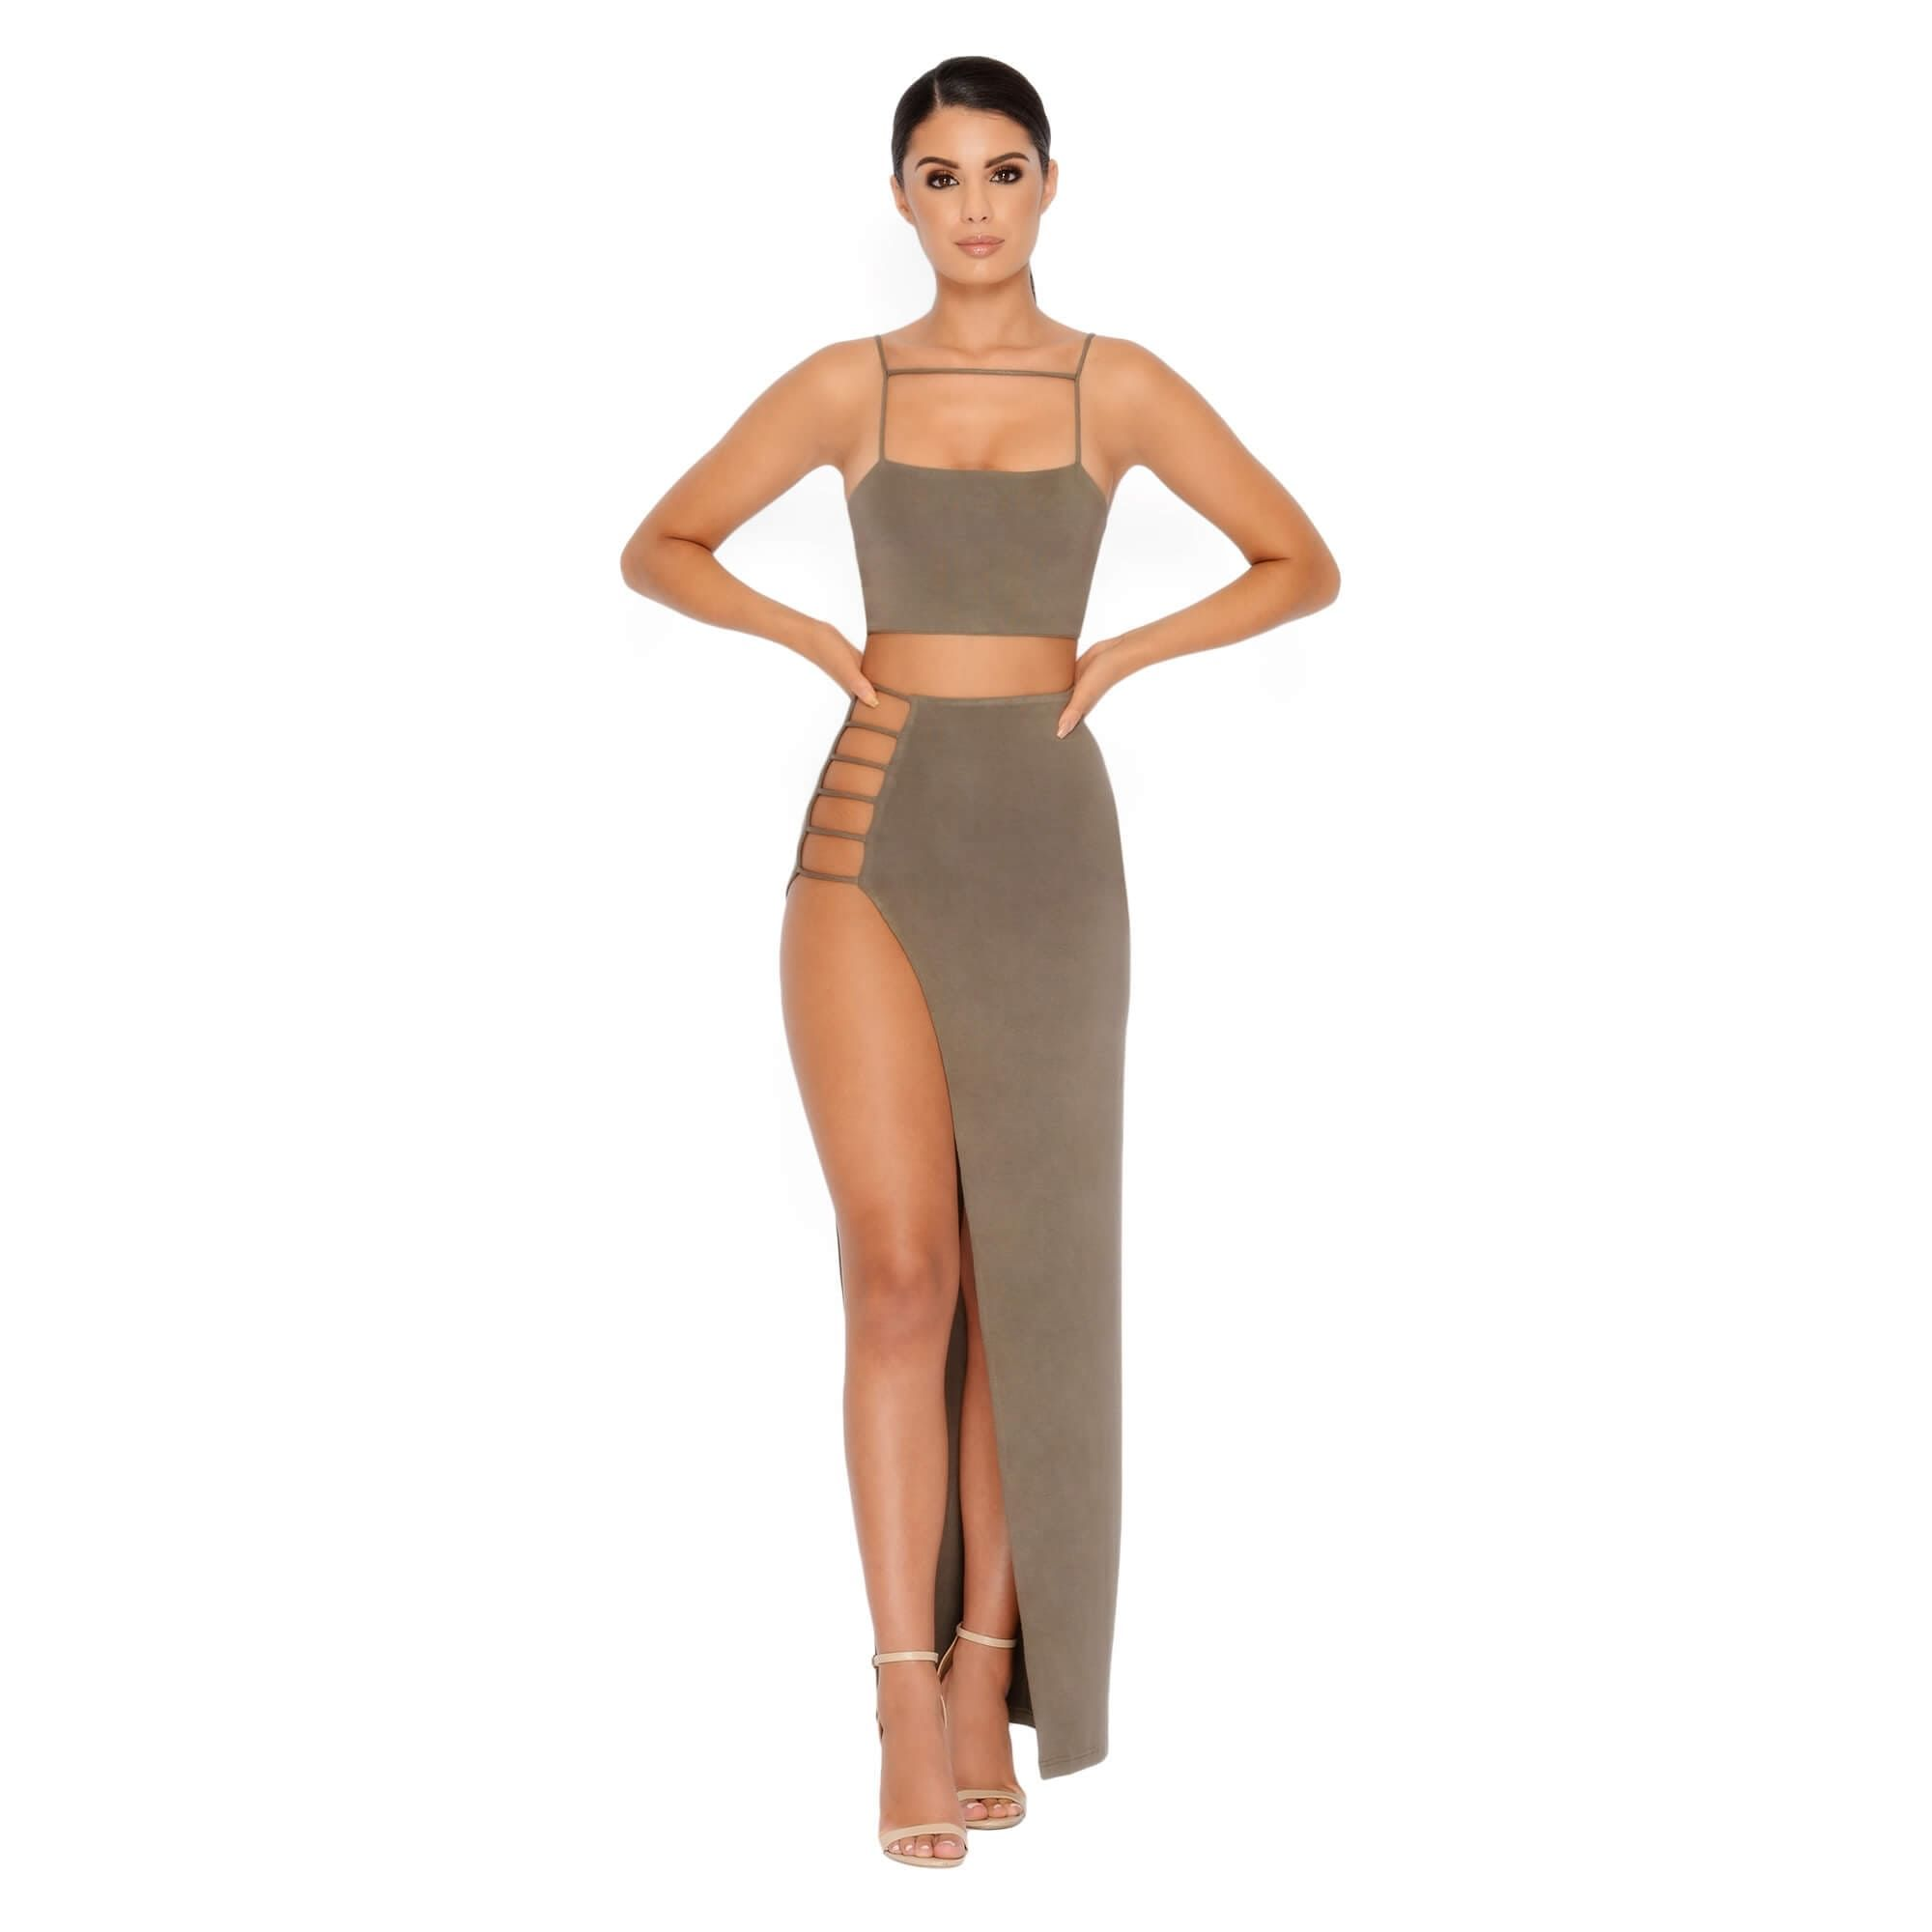 2032d3d57 Maxi skirt crop top strappy two piece - front | My Virtual Closet ...